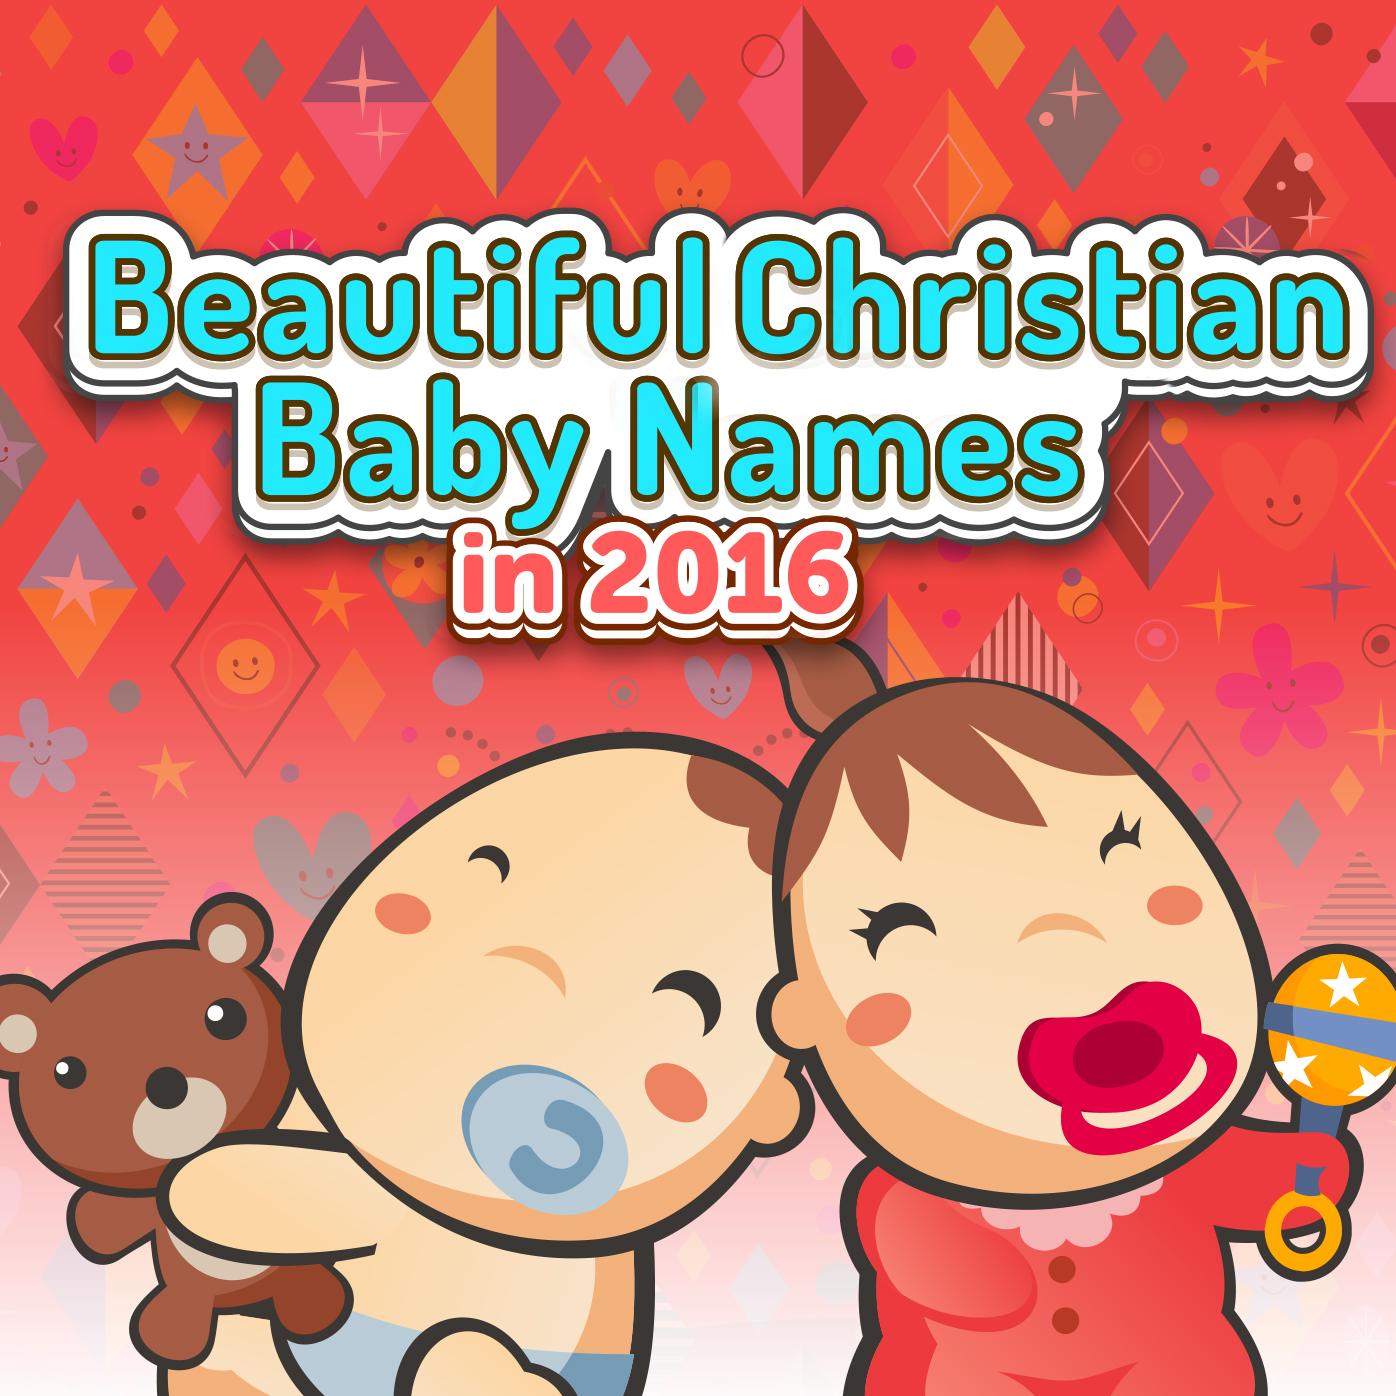 Beautiful Christian Baby Names for 2016